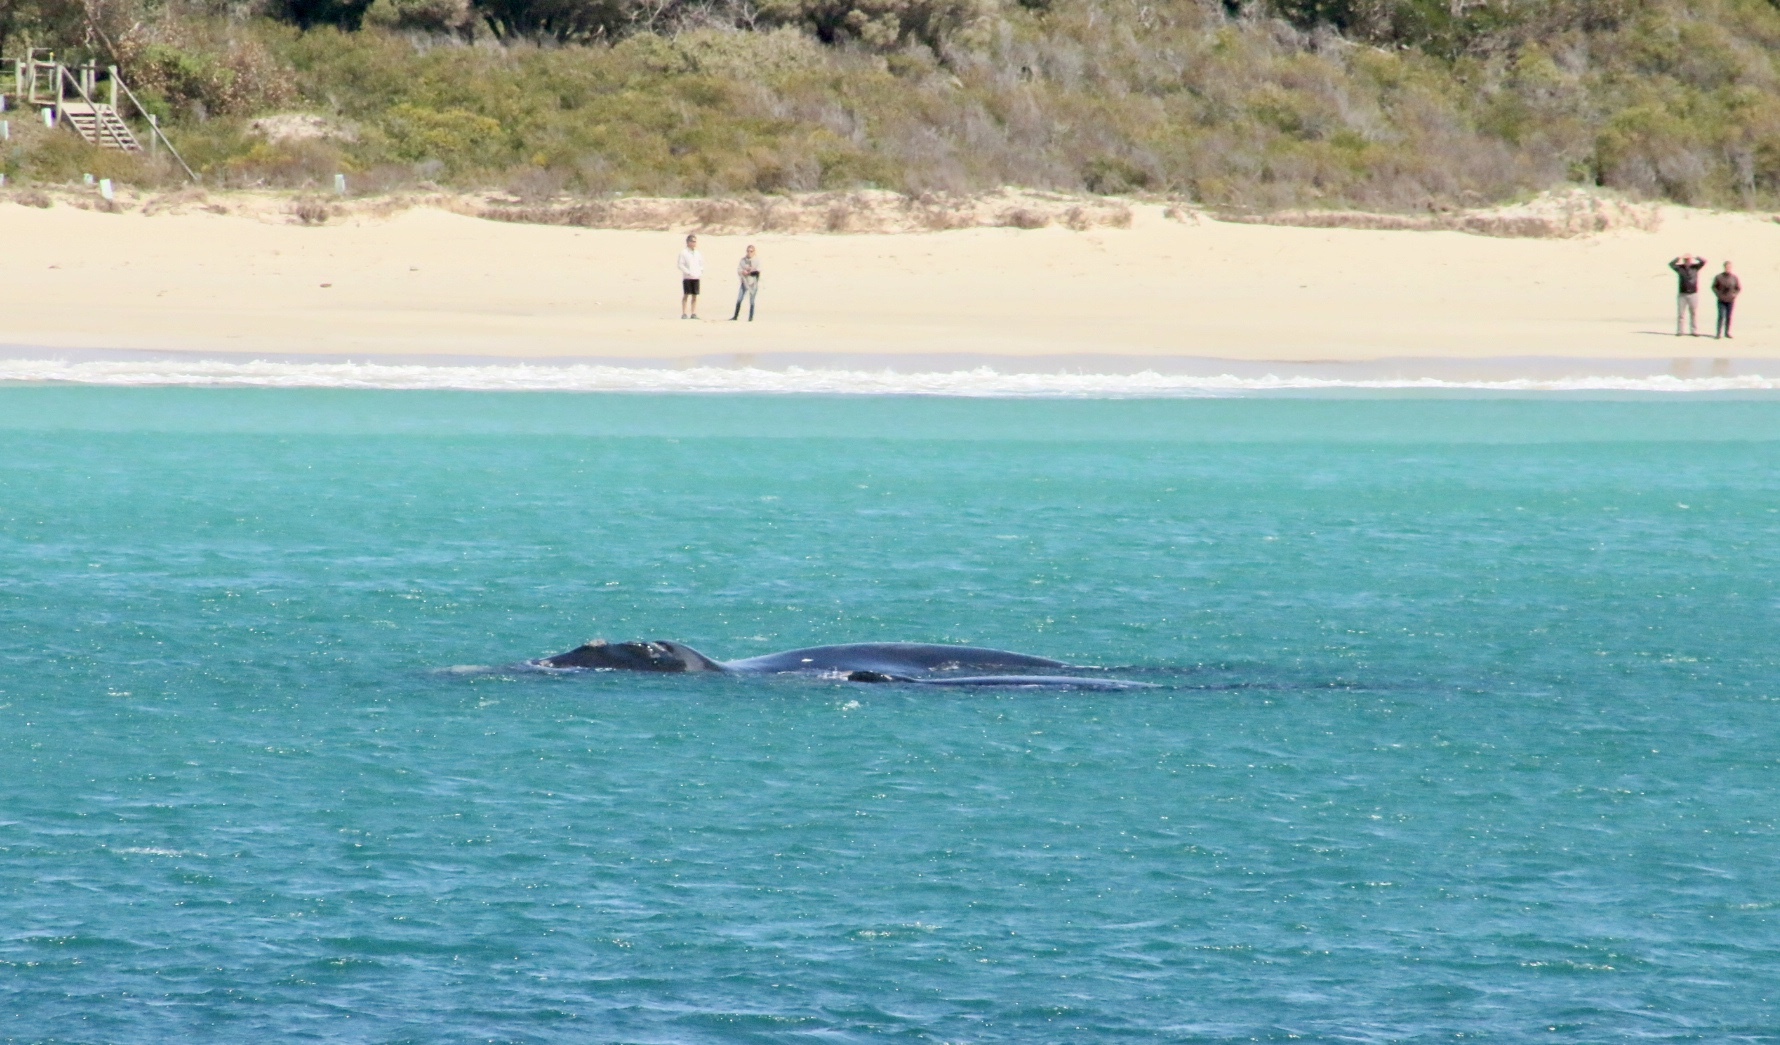 Fun Facts about Southern Right Whales